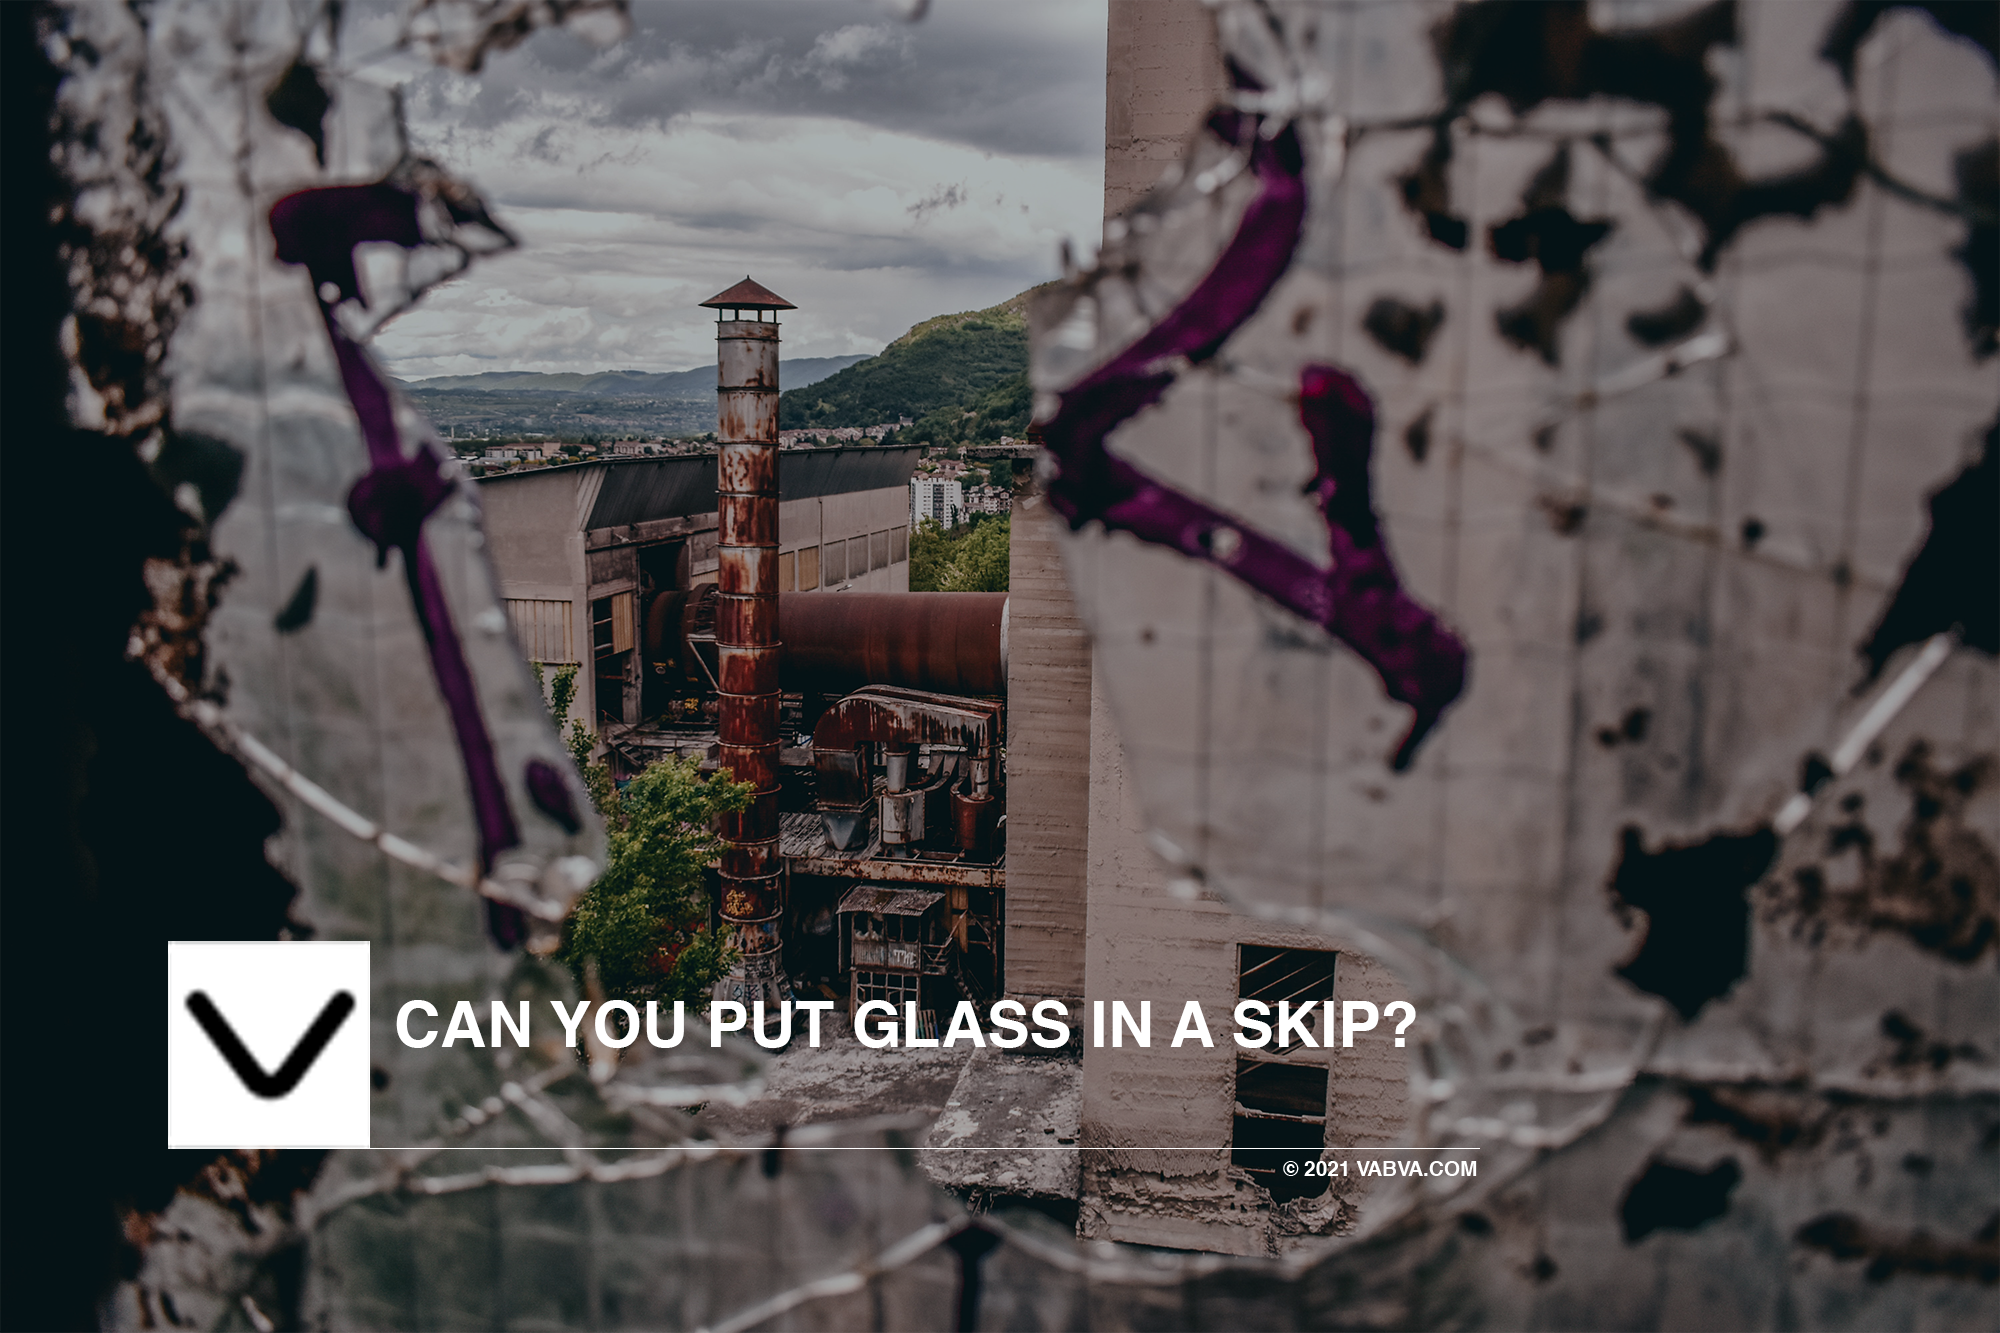 Can you put Glass in a skip?